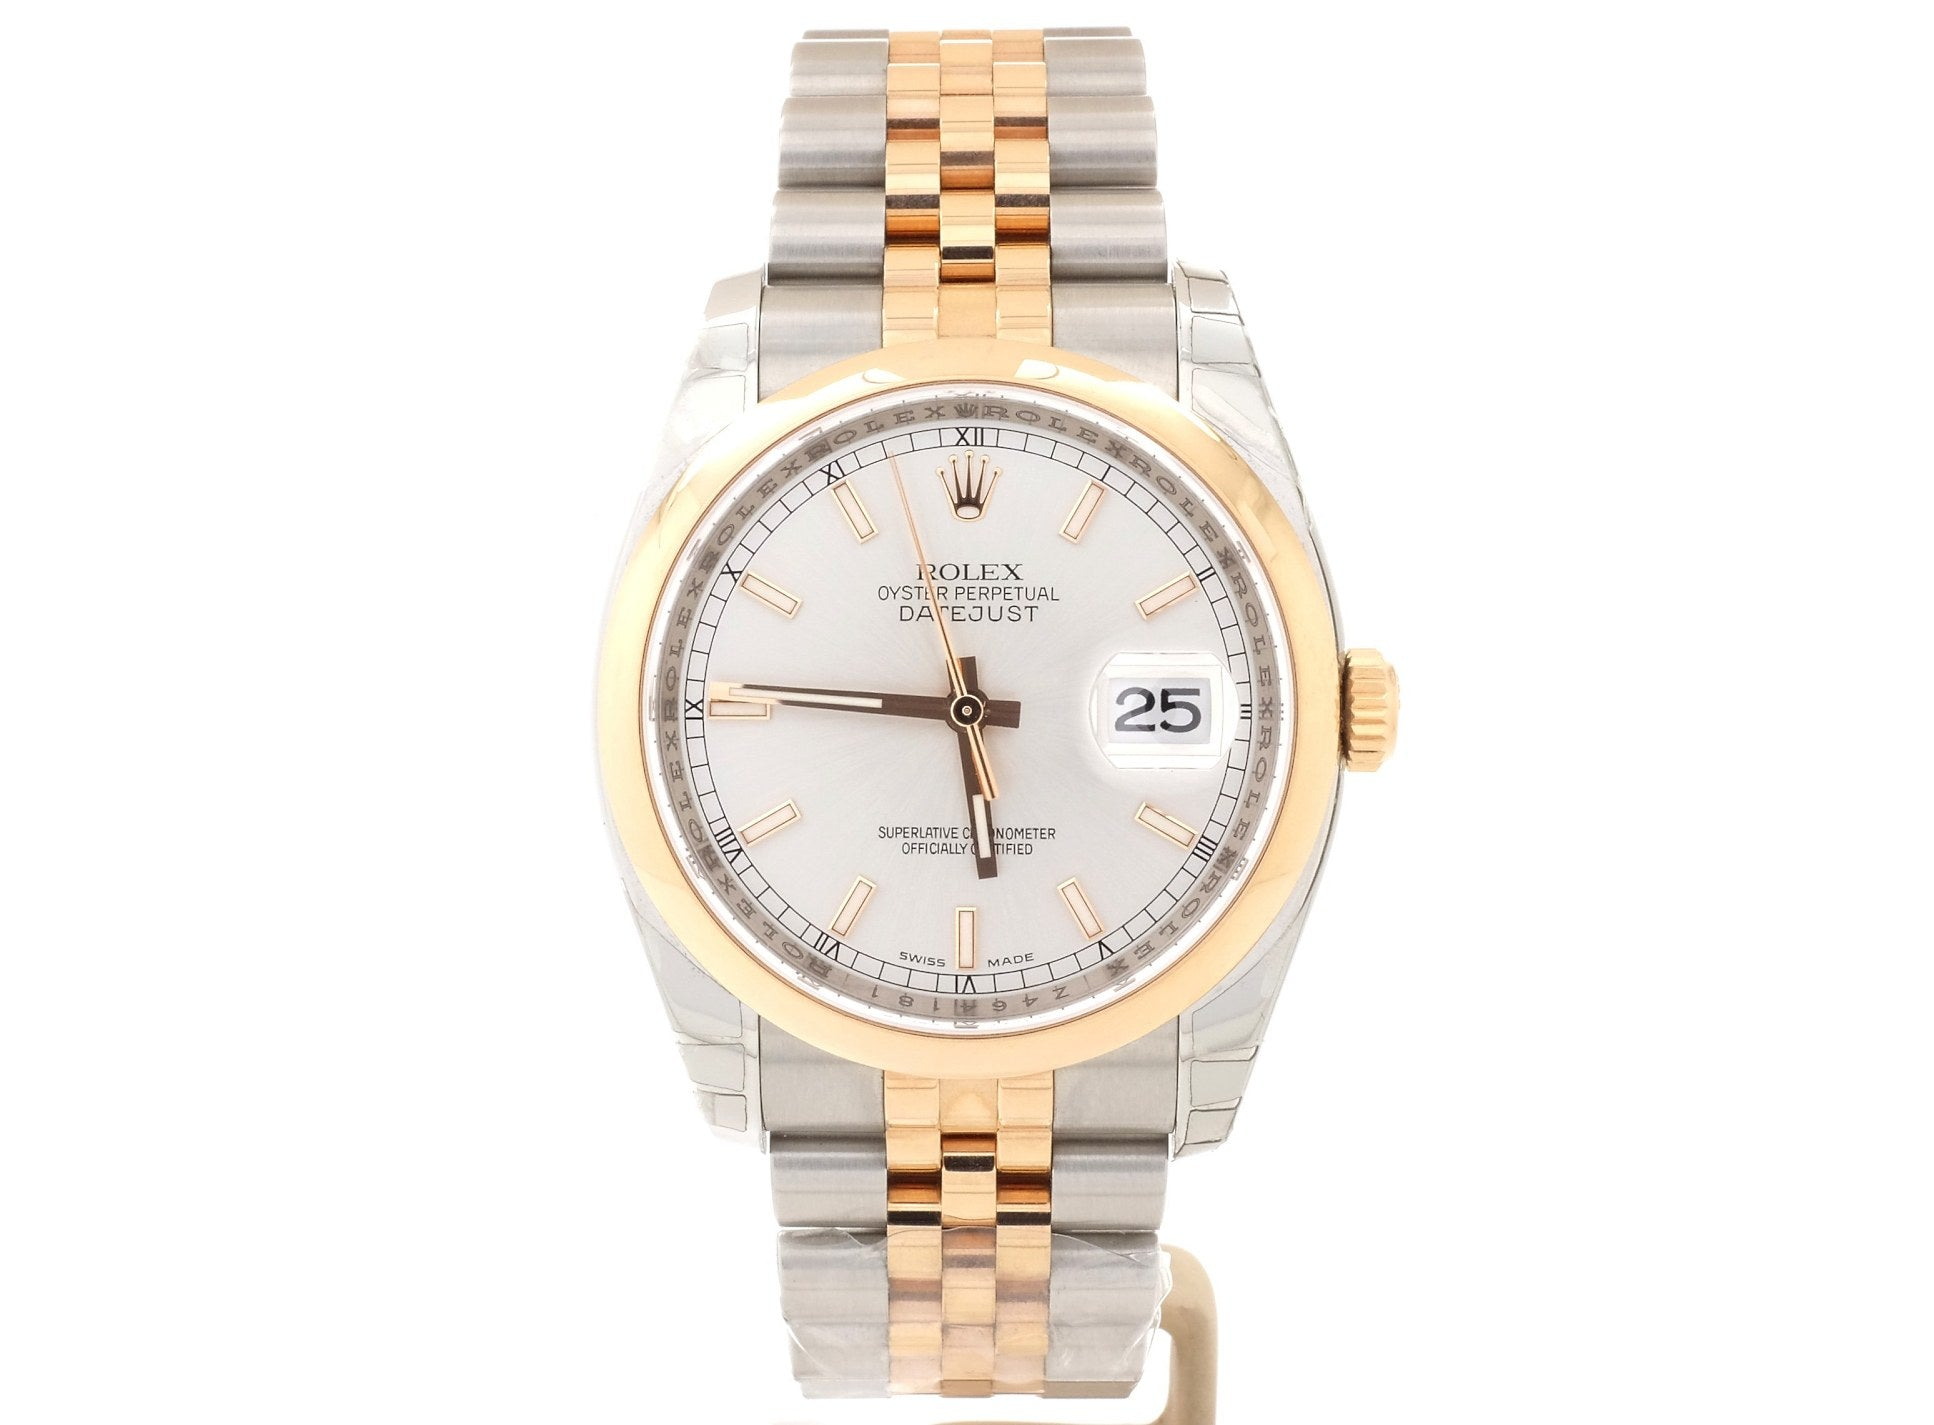 36mm 2007 Rolex Datejust 116201 in 18ct Rose Gold and Steel with Light Grey Dial